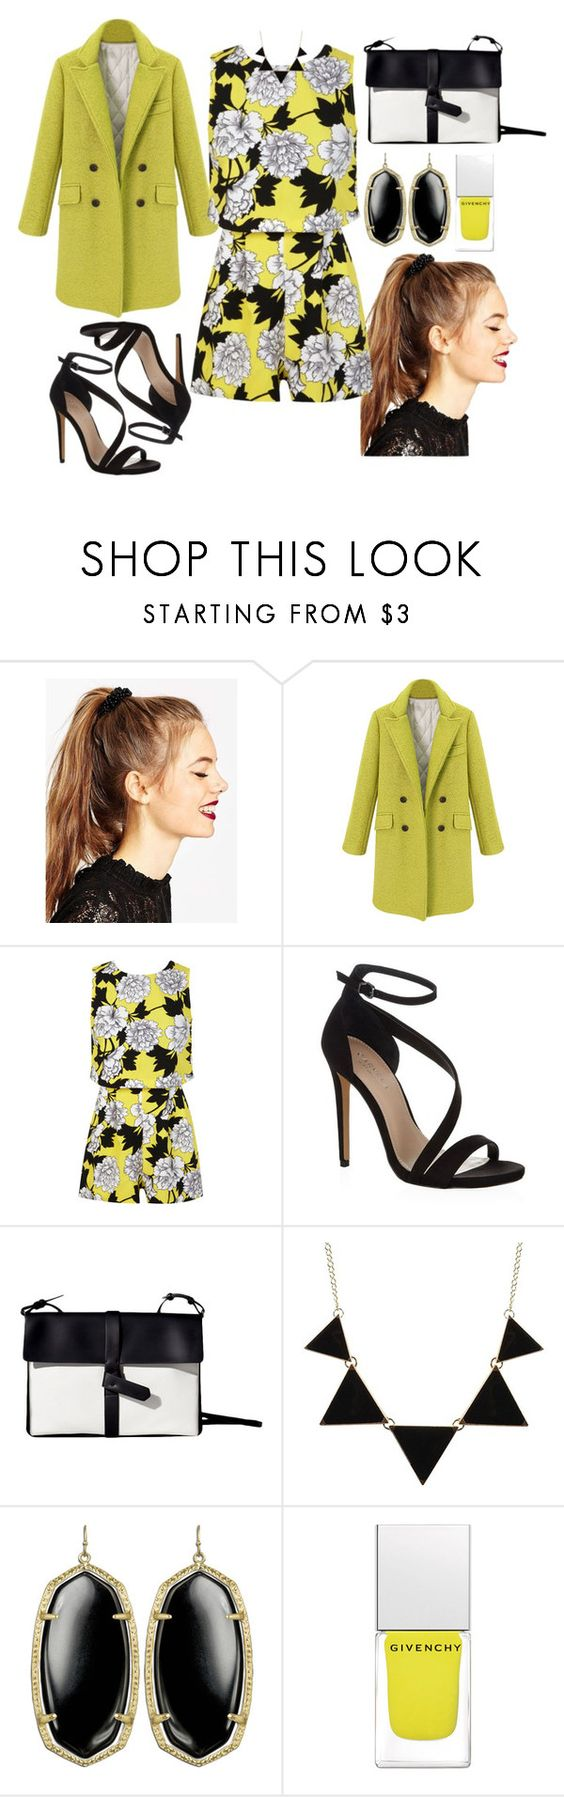 """5876"" by gabipolyvore92 ❤ liked on Polyvore featuring ASOS, Miss Selfridge, Carvela Kurt Geiger, CO, Kendra Scott and Givenchy"